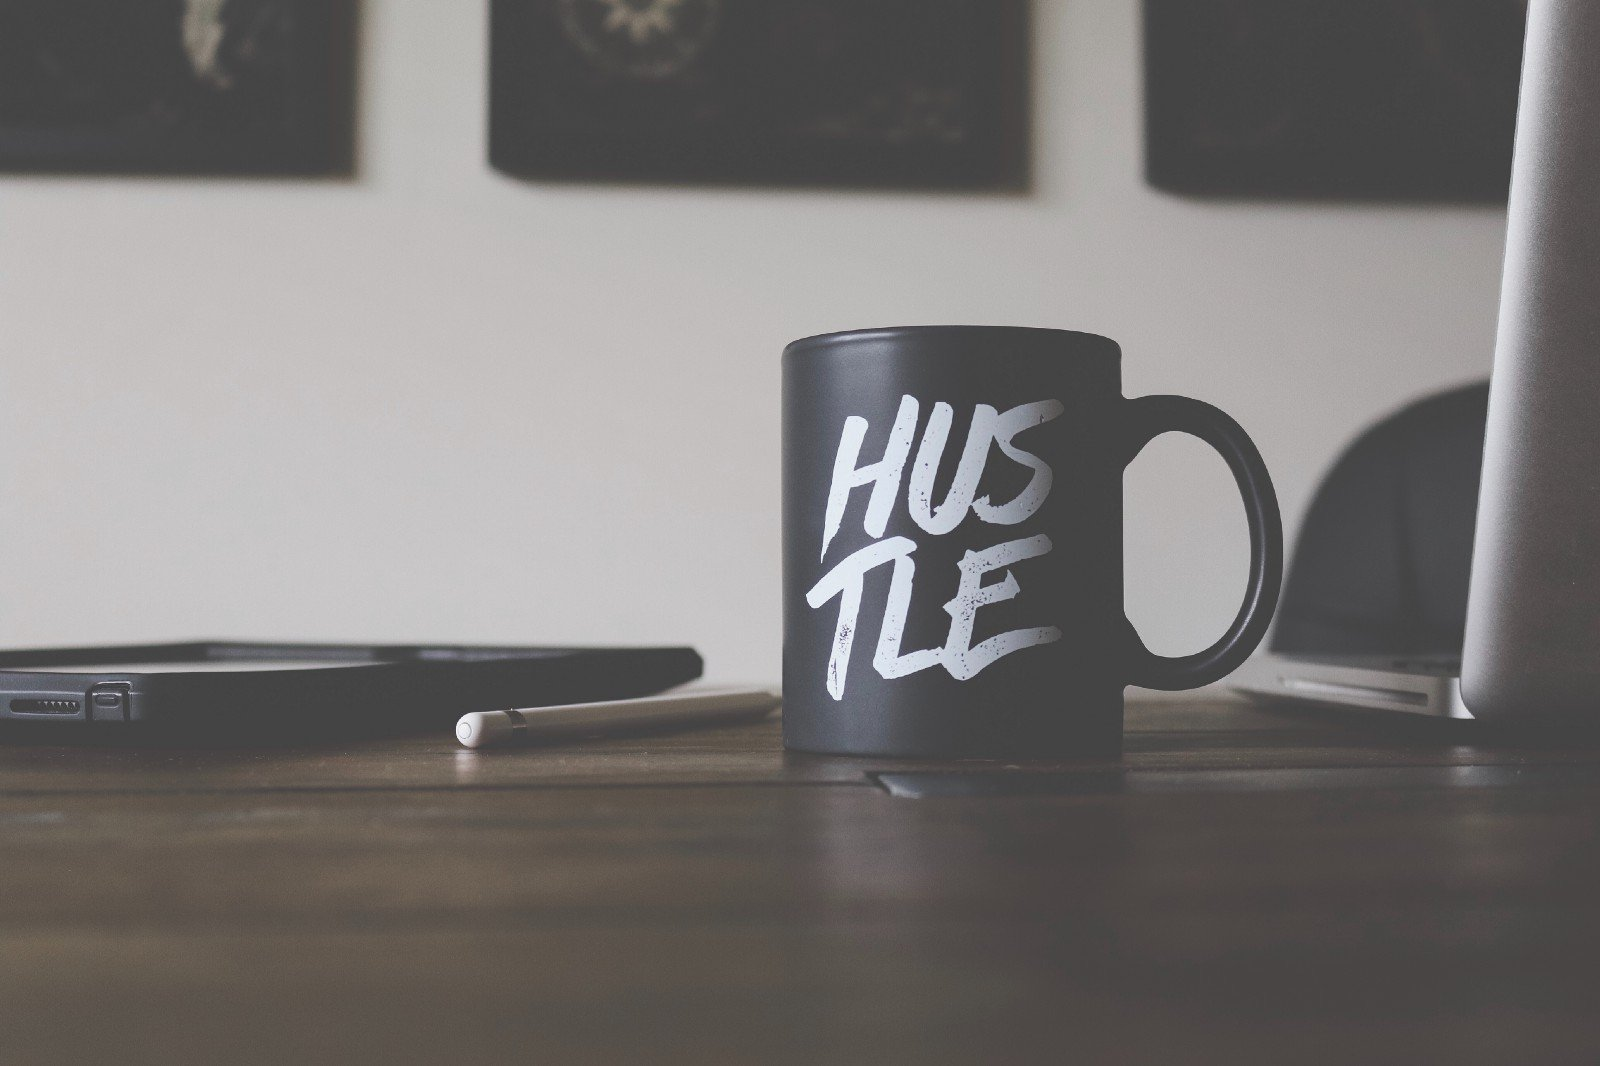 Less hustle, more bustle.